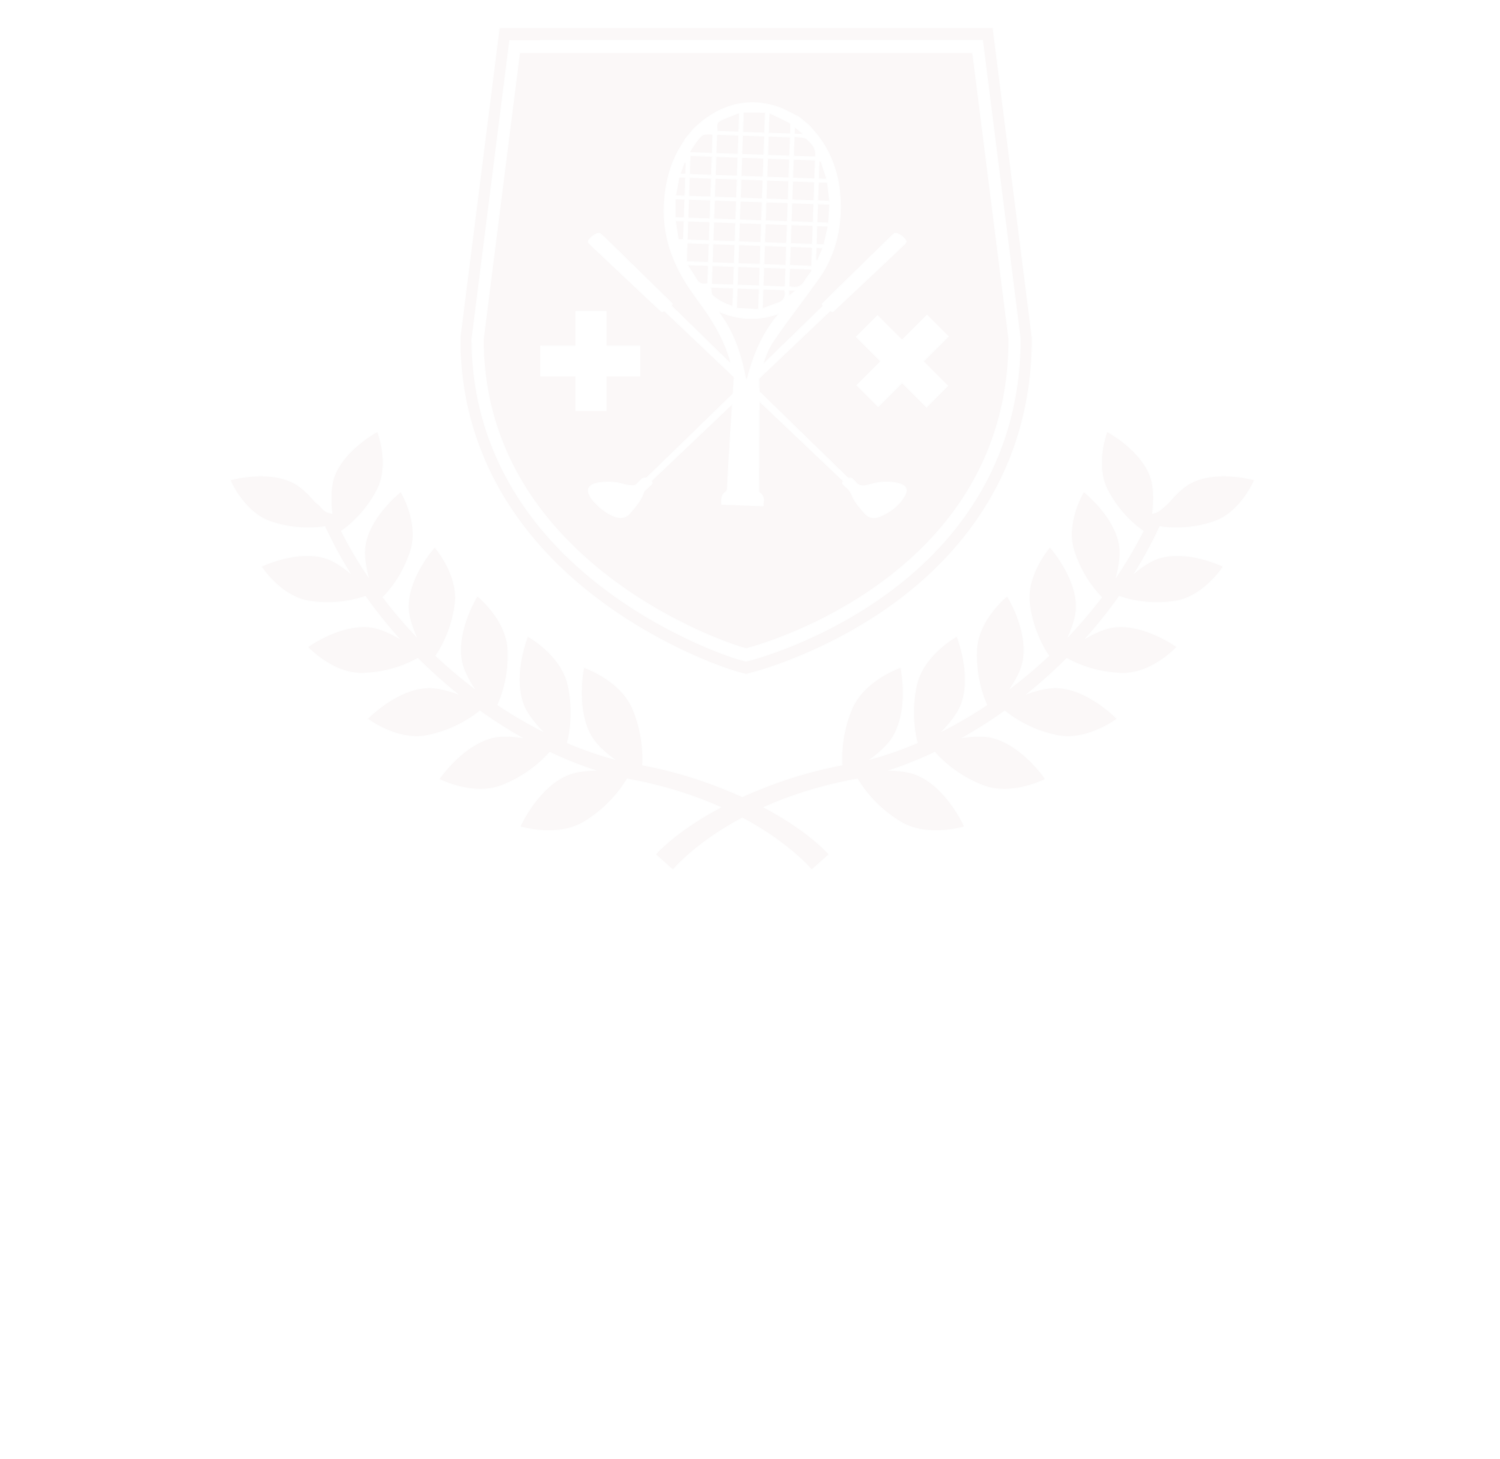 LeGarritsen Country Club